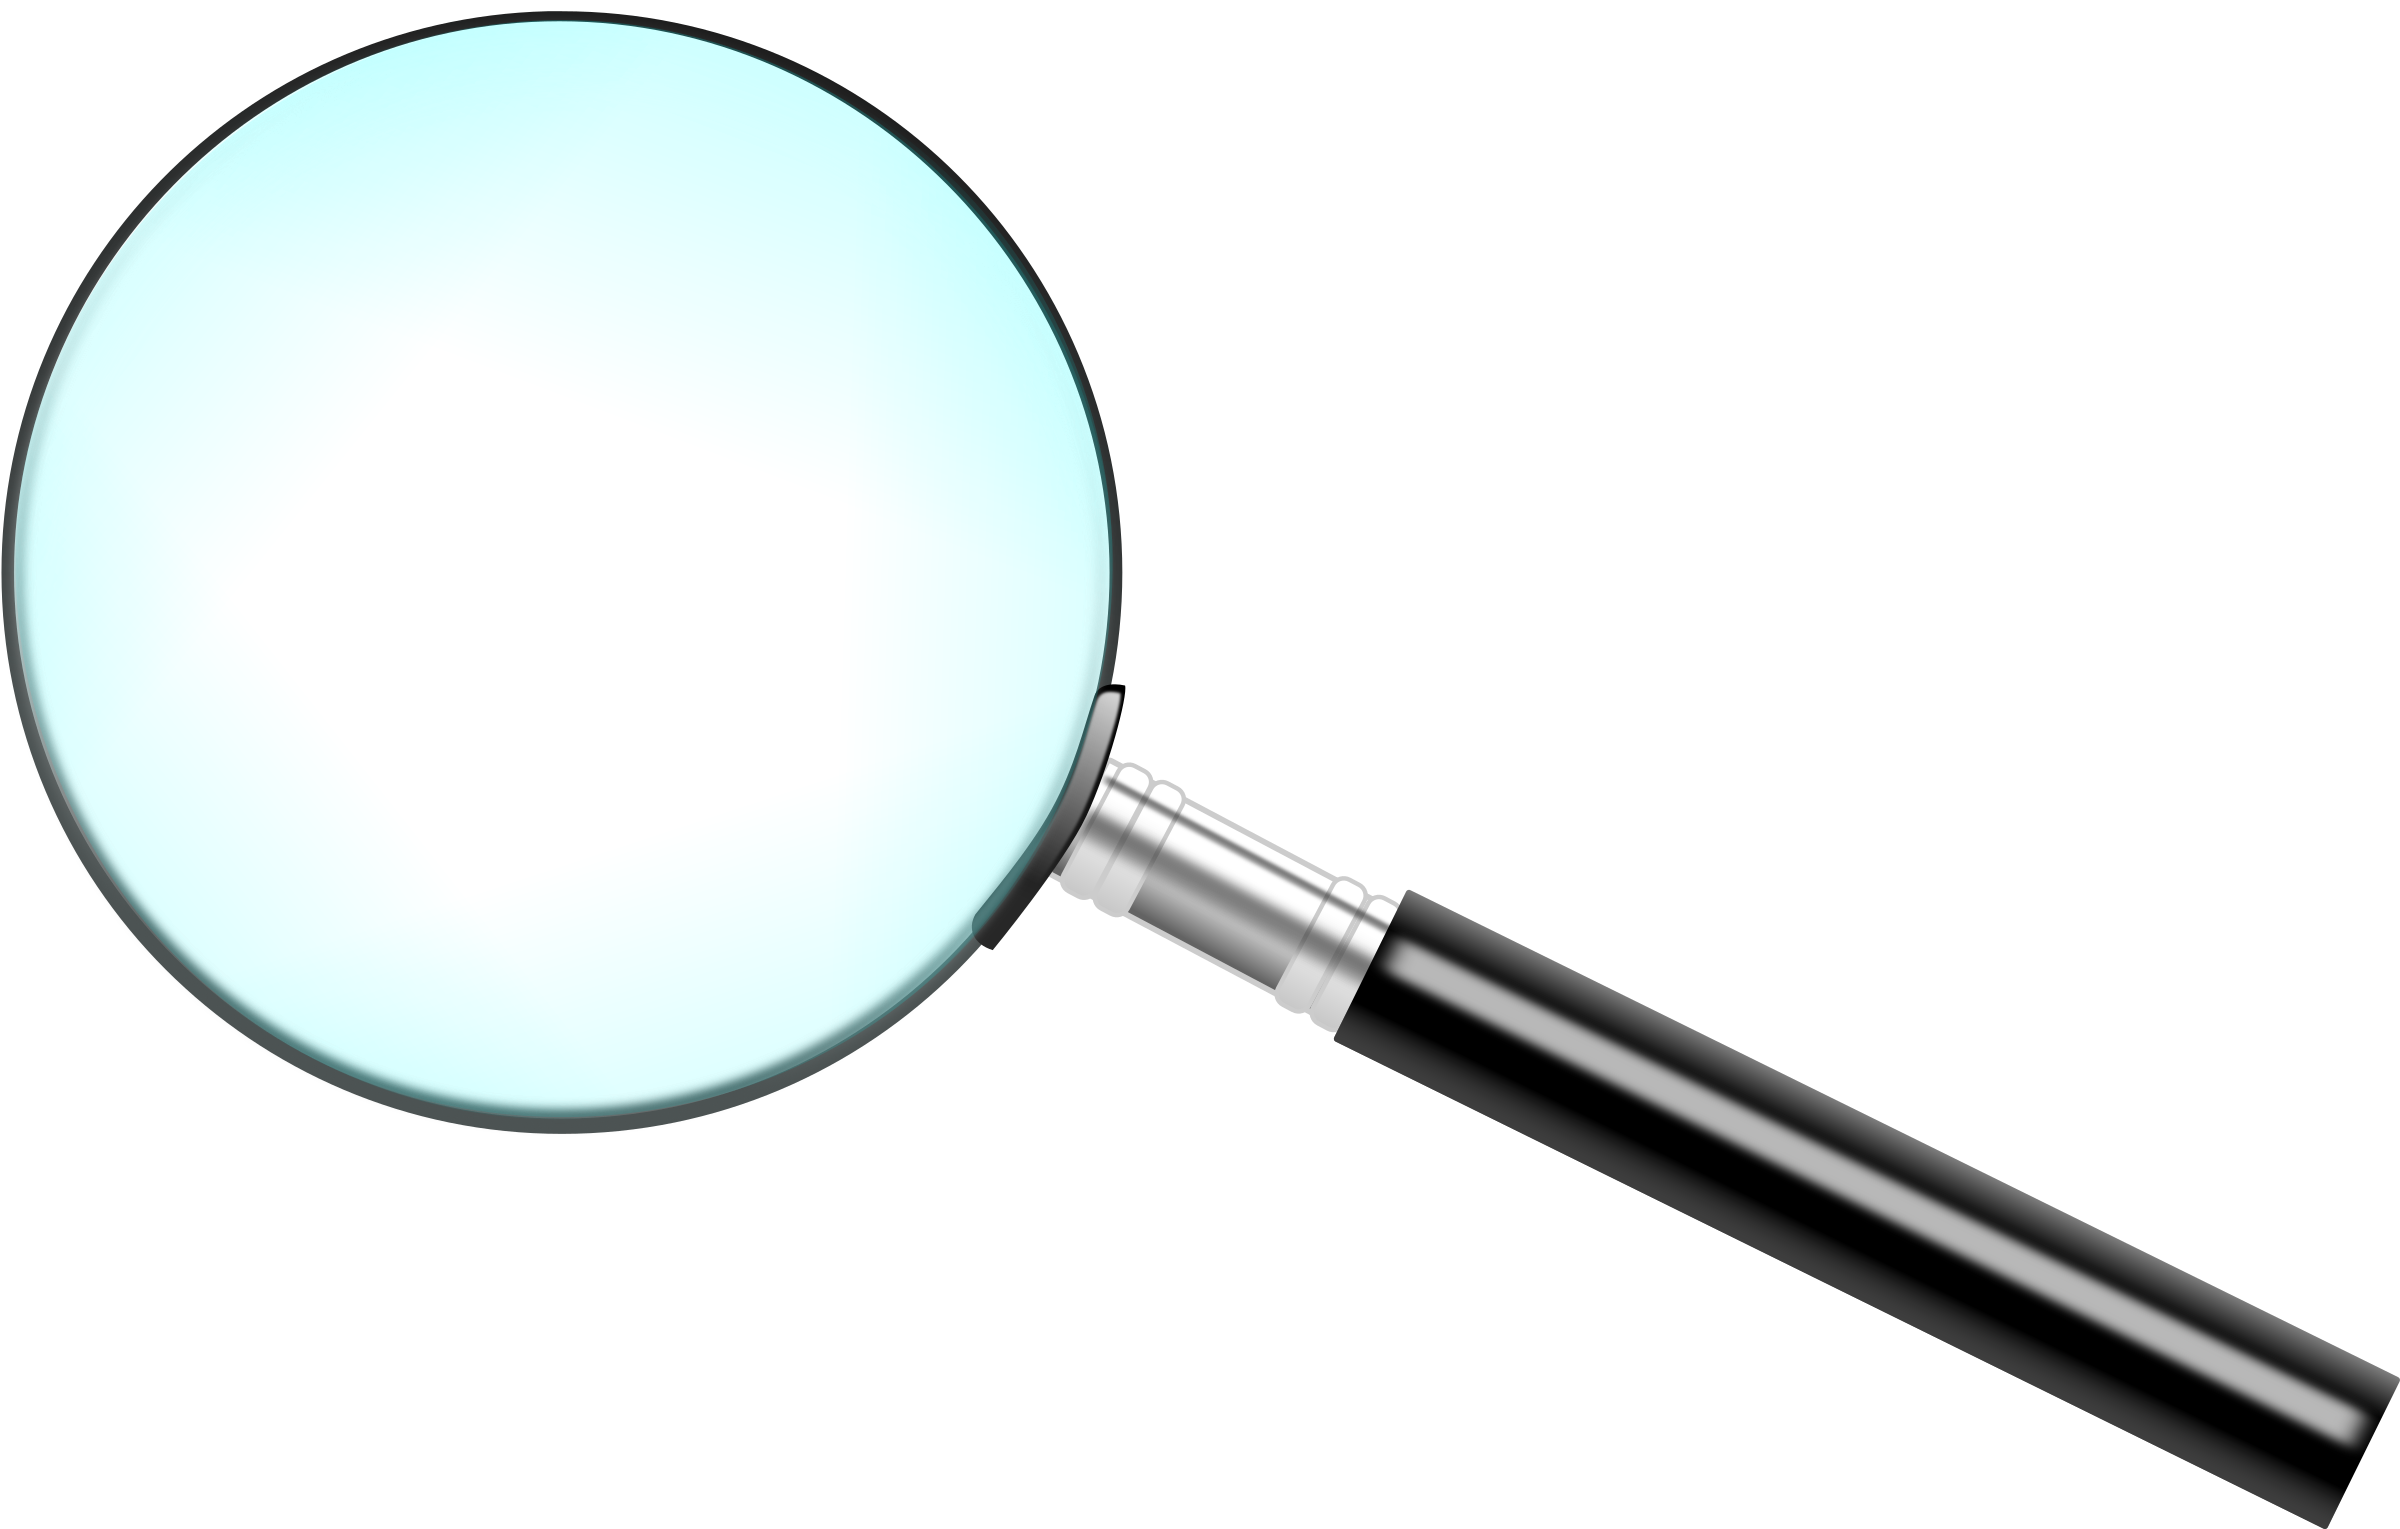 A simple magnifying glass by Wachín